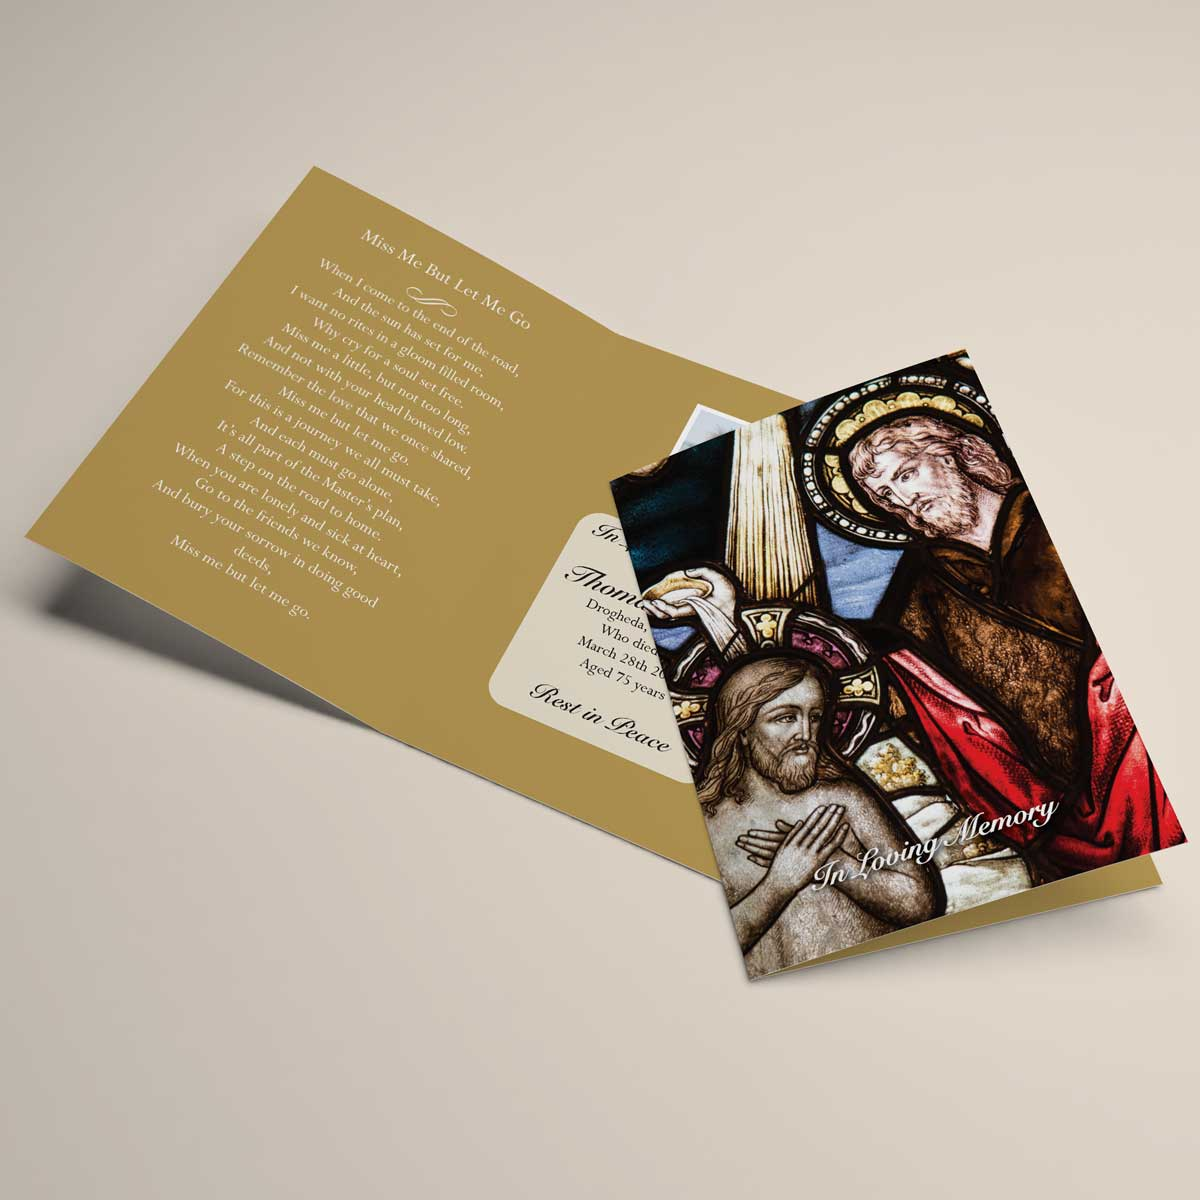 Religious inspired memorial card design - Our Lord